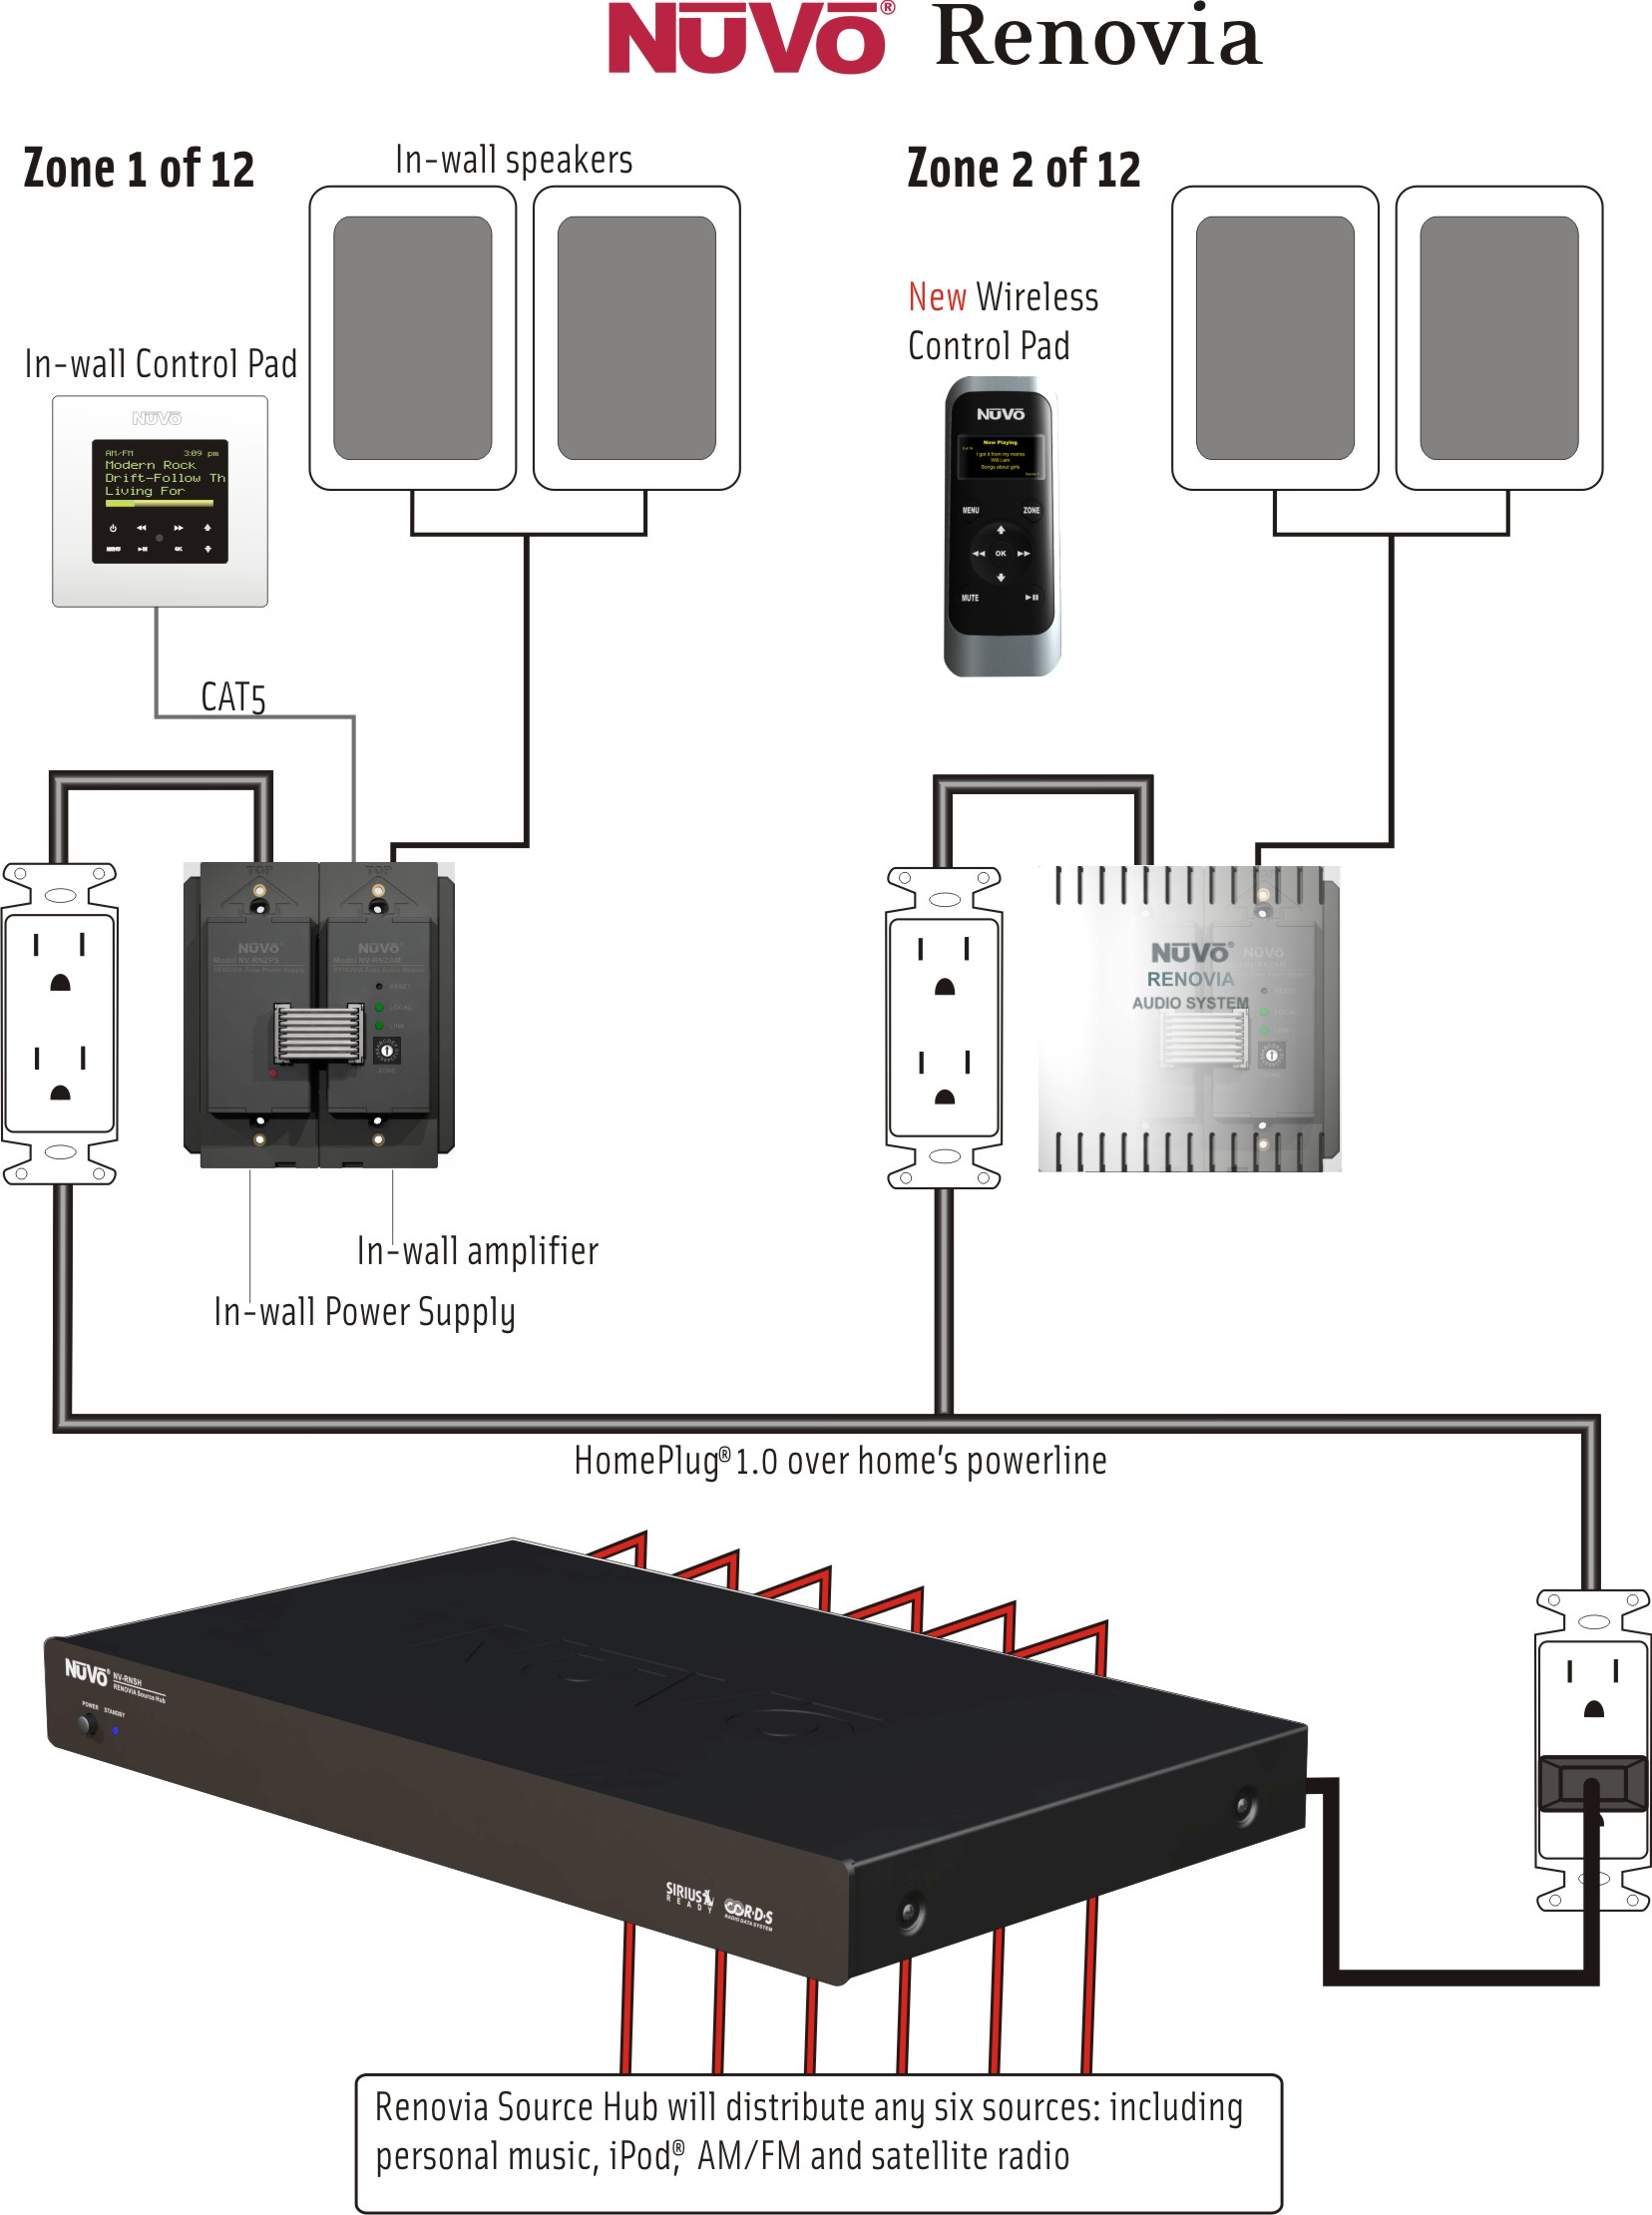 amplifier hook up diagram The all-in-one source for hdtvs, networking devices, receivers, speakers, amplifiers, dvrs, game systems, htpcs, hd dvd/blu-ray players, cables, interconnects, and setting up a home theater network.